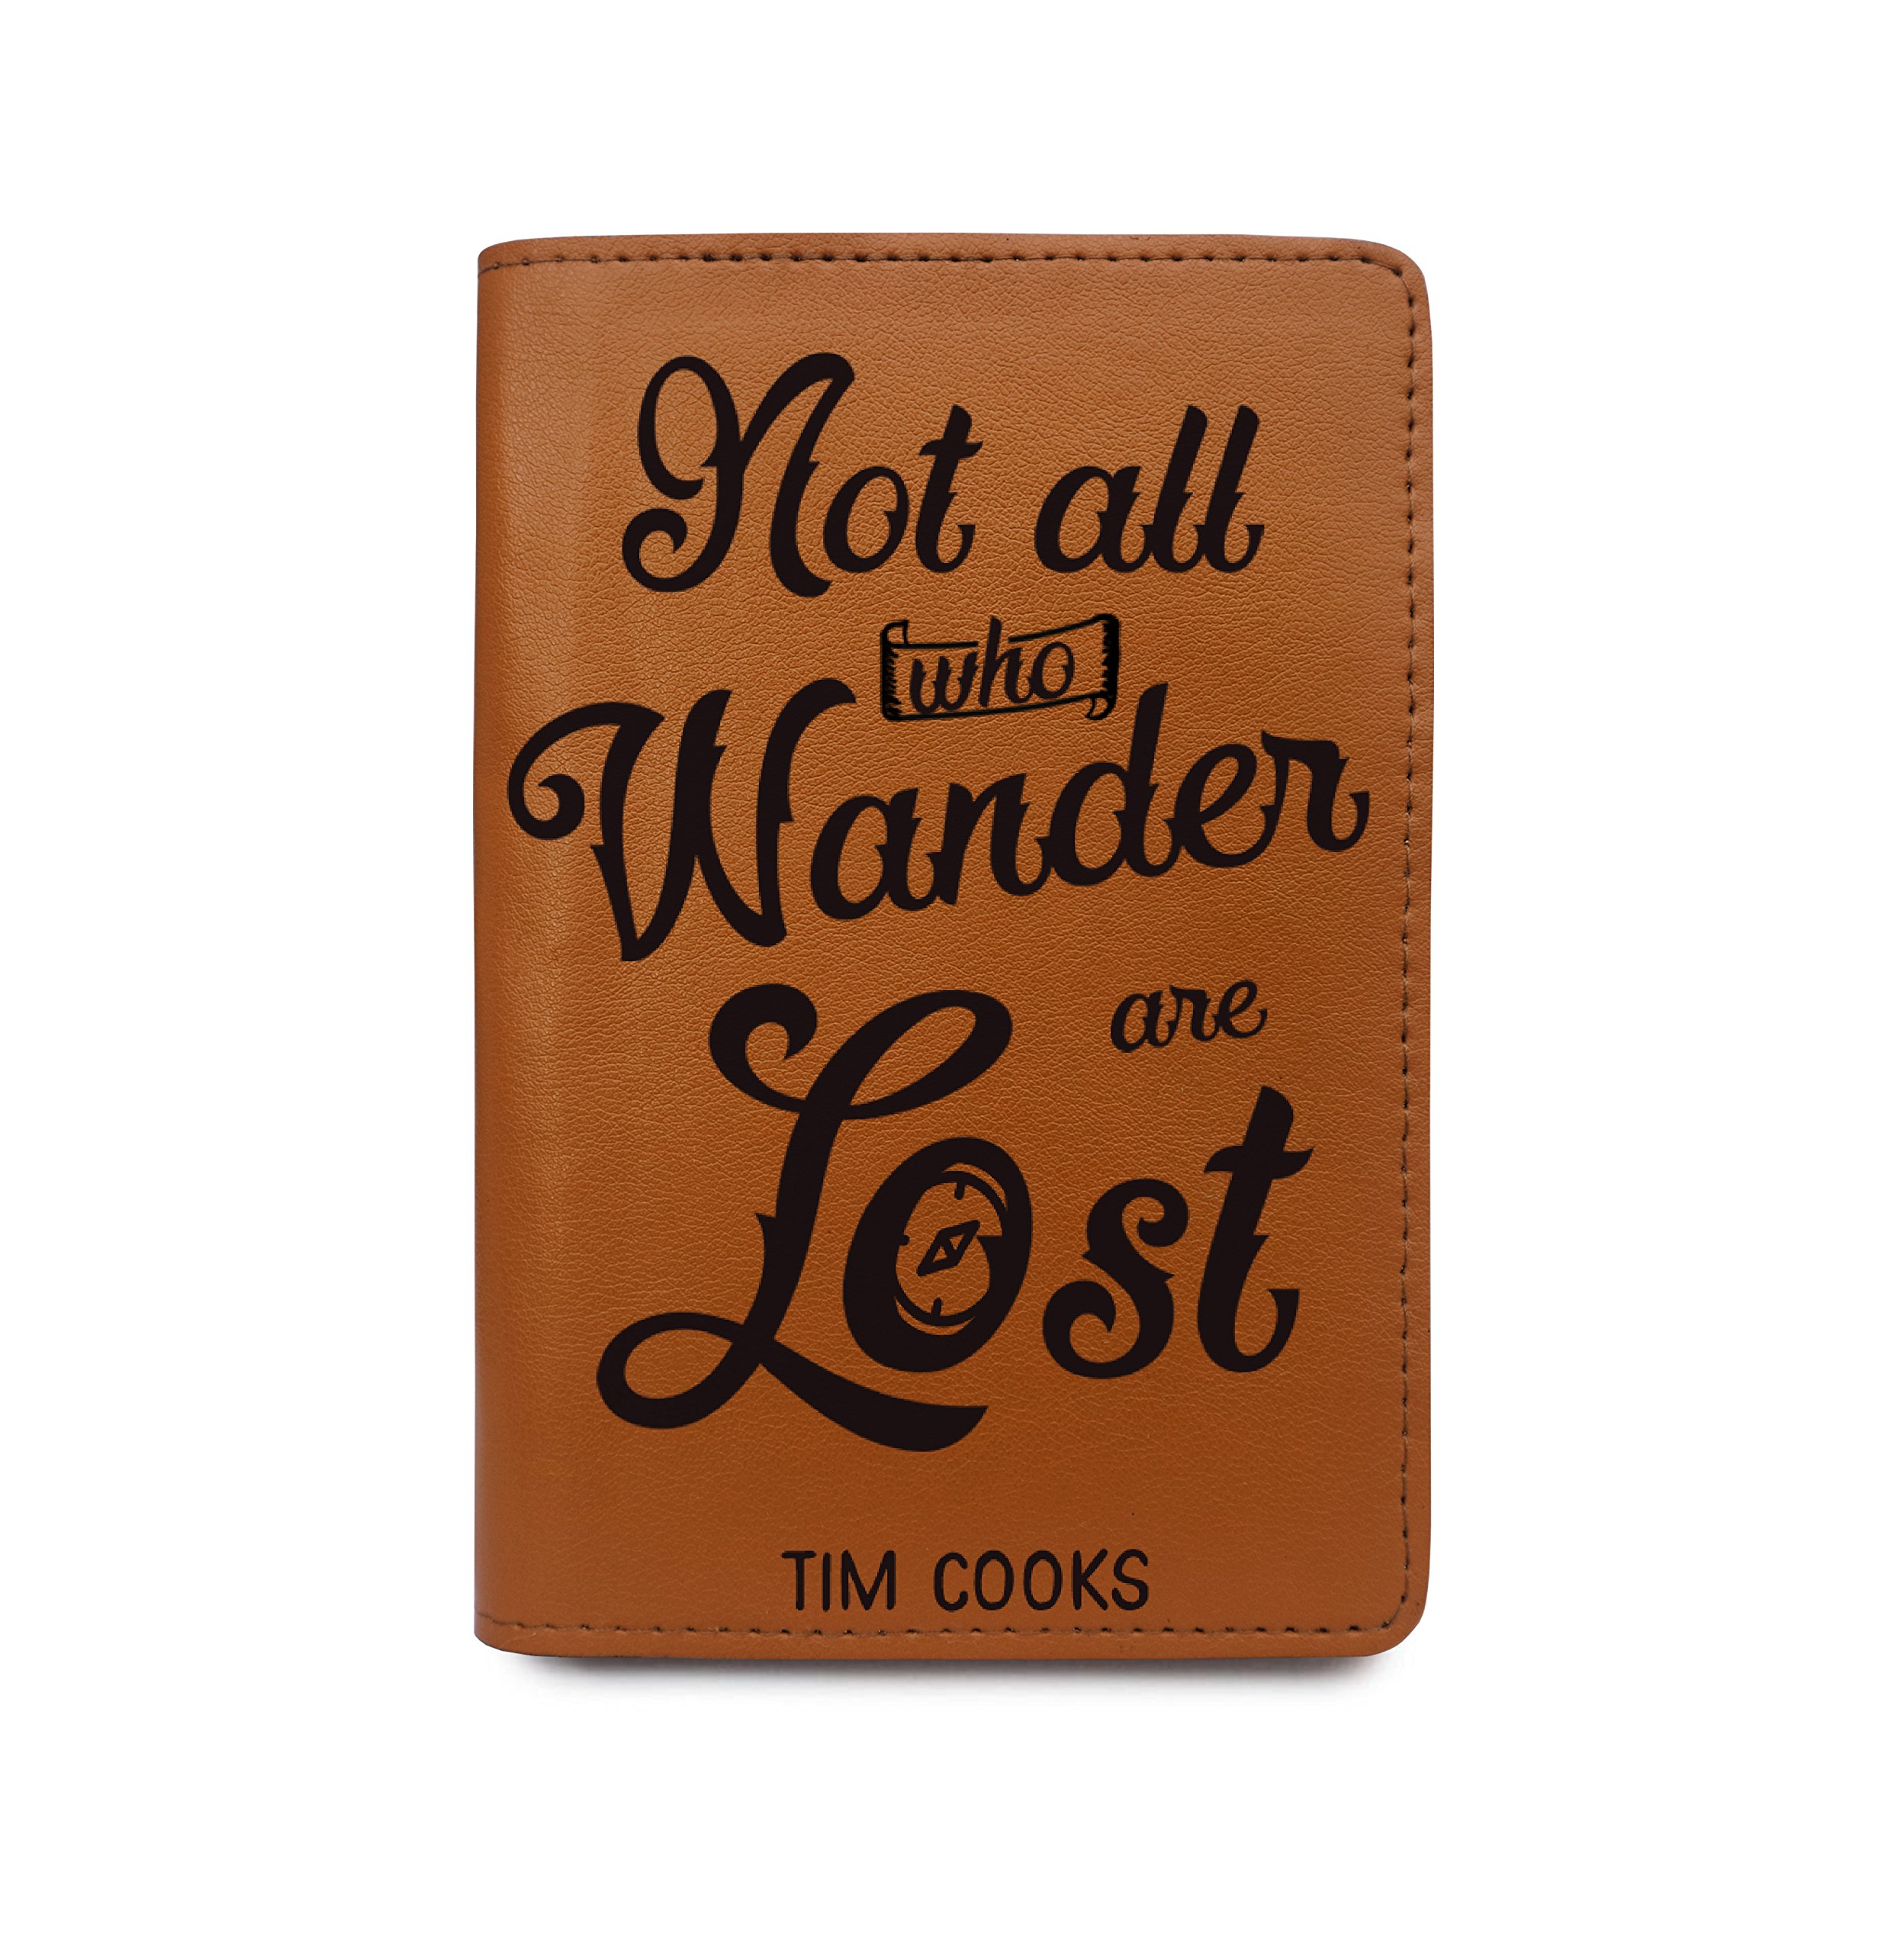 Personalized Leather Passport Cover - Not All Who Wander Are Lost